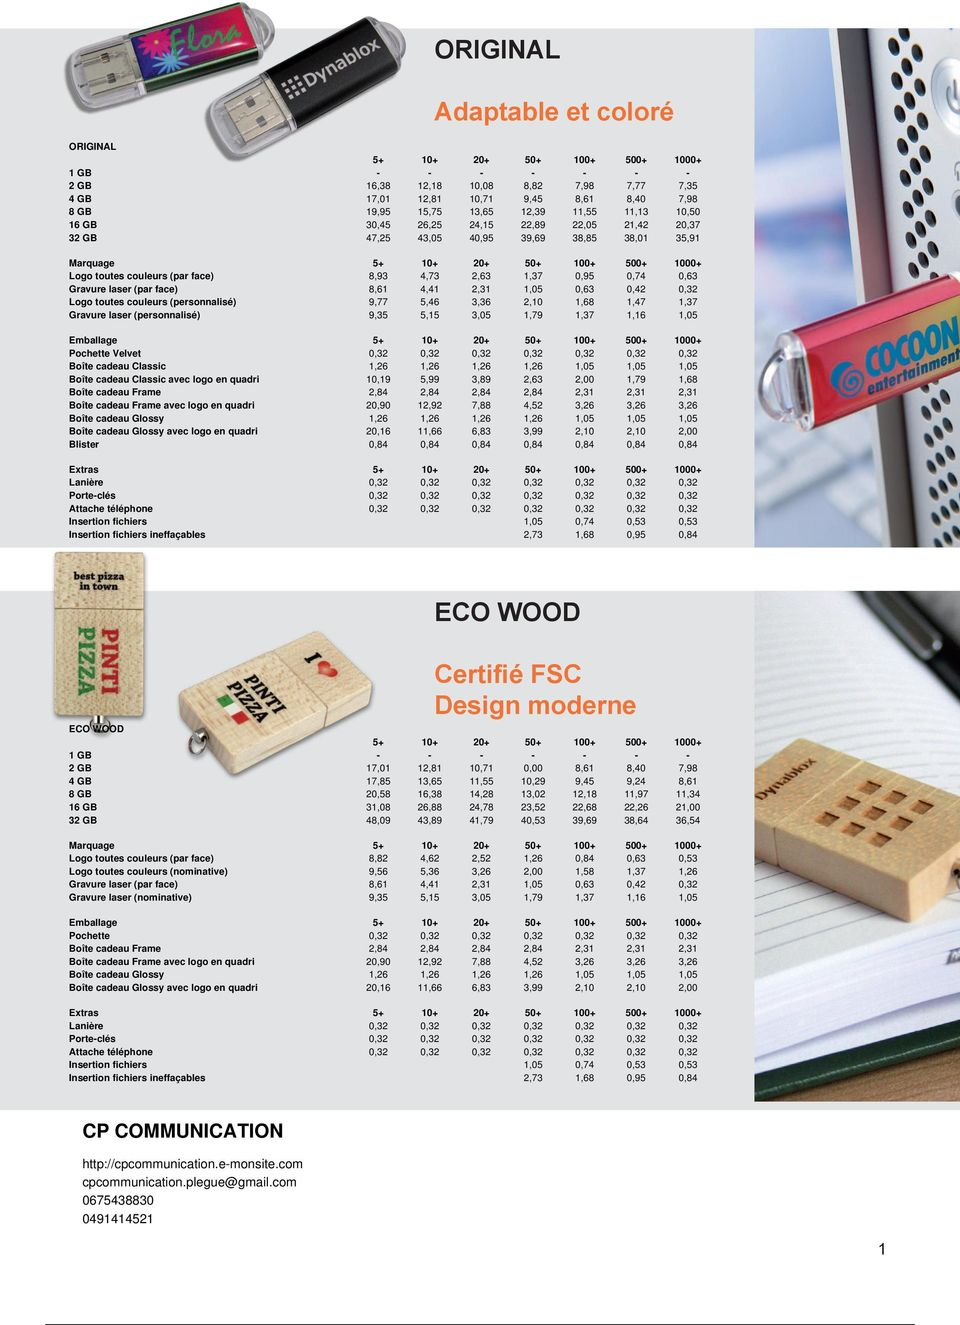 Design moderne ECO WOOD 3 17,01 17,85 20,58 31,08 48,09 12,81 13,65 16,38 26,88 4 10,71 11,55 14,28 24,78 4 0,00 13,02 23,52 4 9,45 12,18 22,68 39,69 22,26 11,34